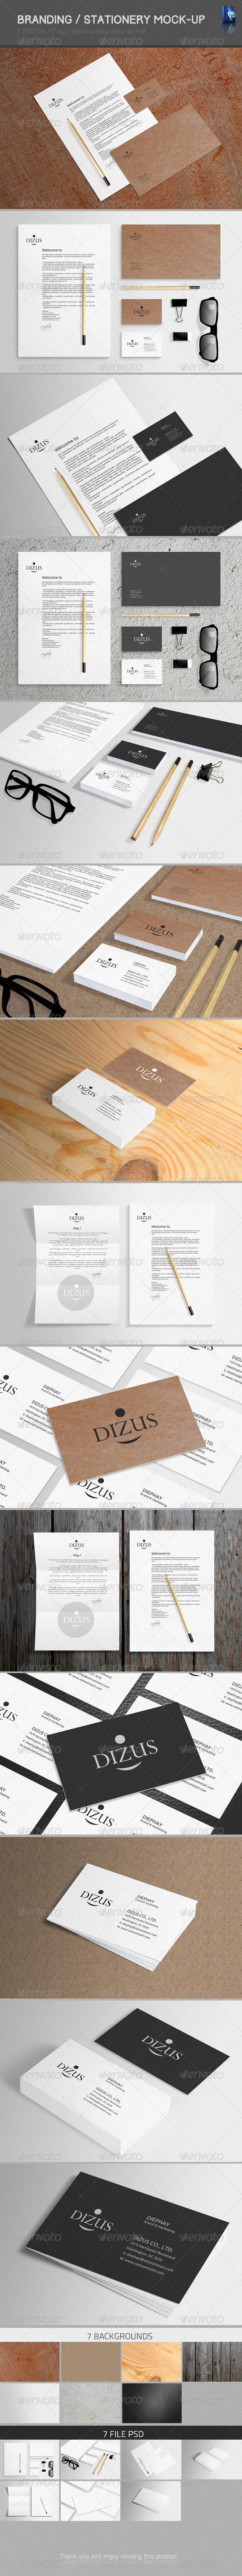 GraphicRiver Stationery Branding Mock-Up 6480484